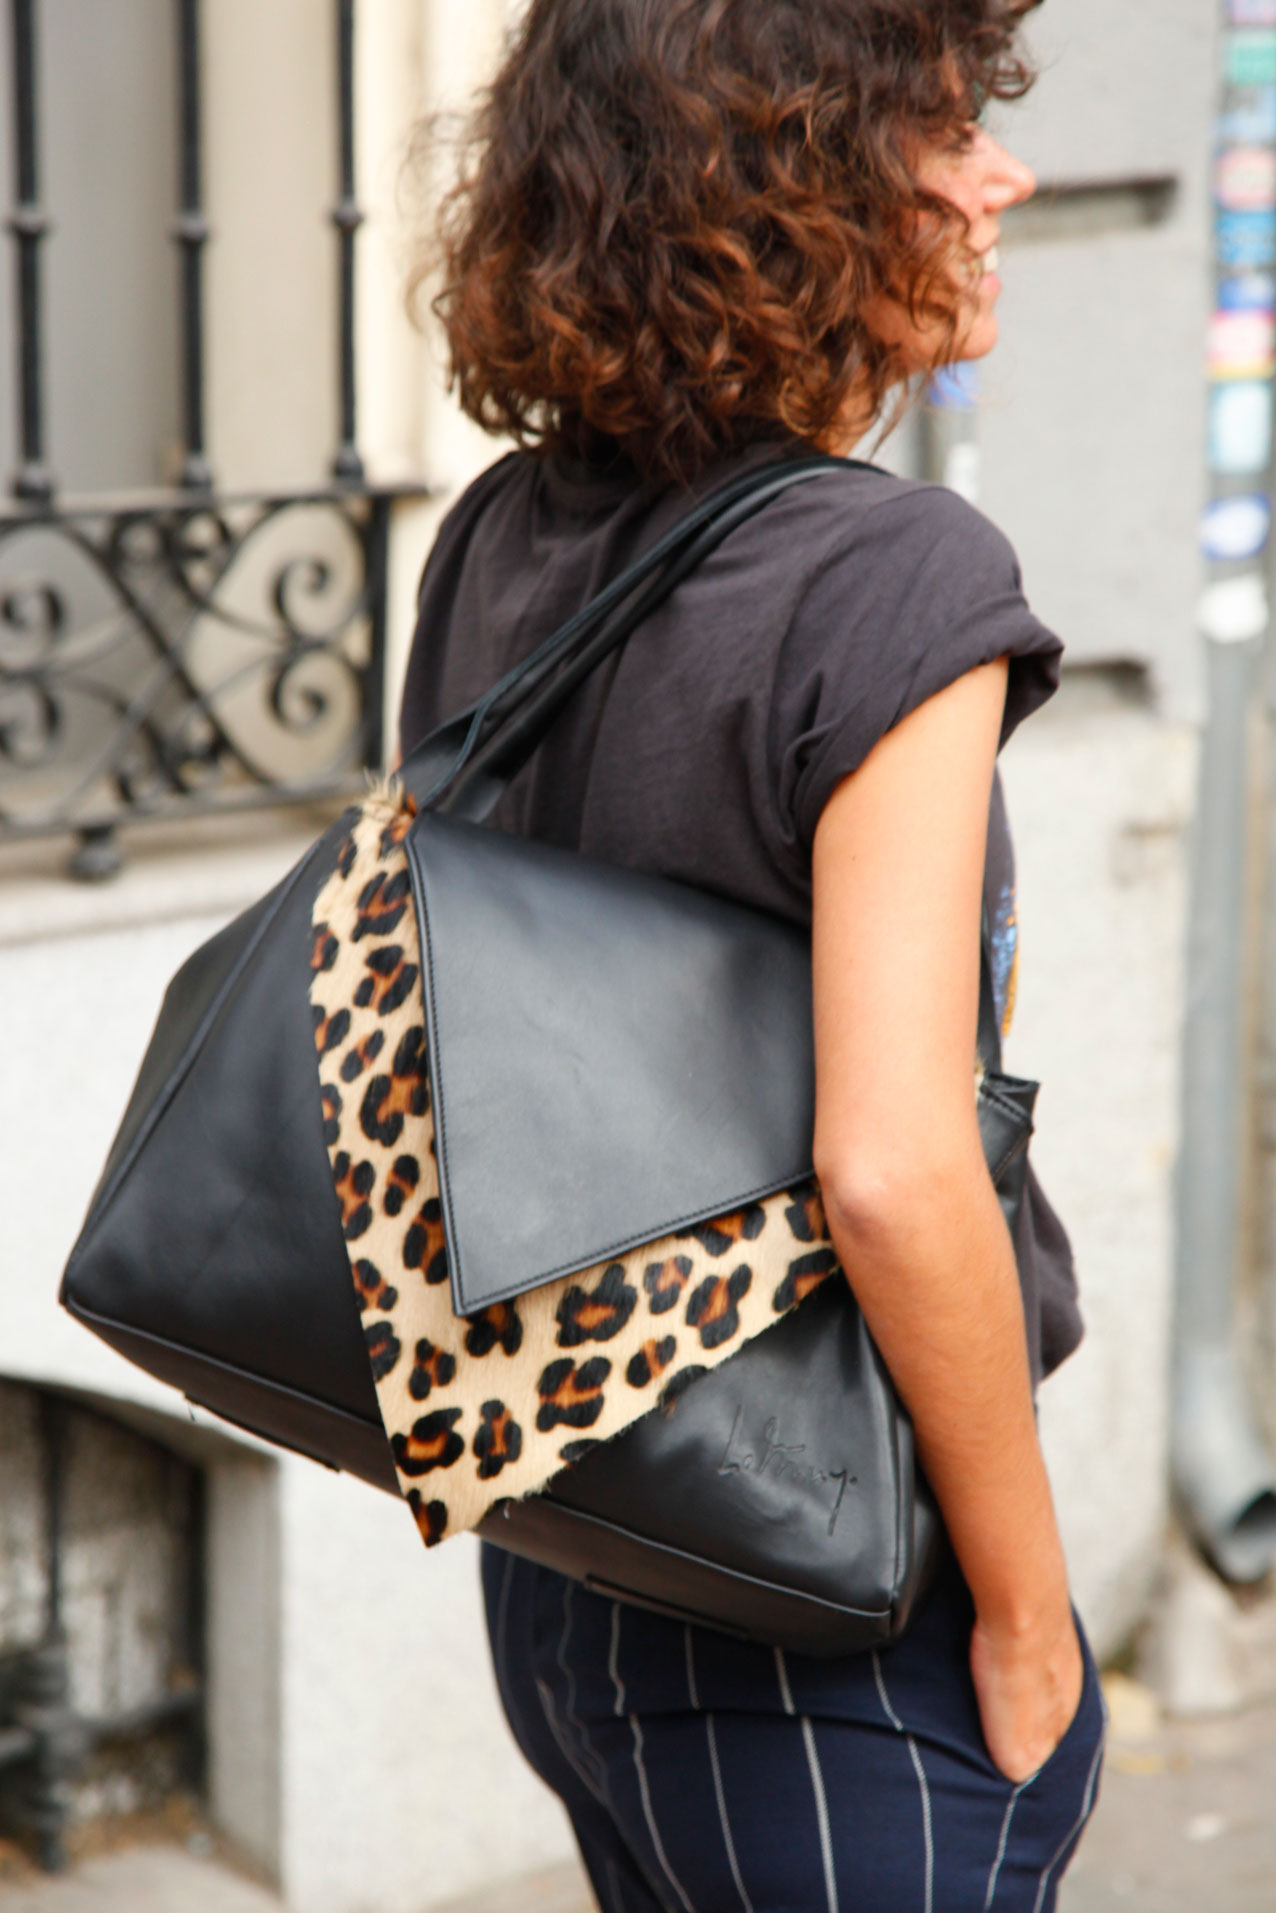 le-muy-mogambo-bag-leopardo-and-siplomatic-metallica-shirt-cool-lemonade-streetstyle3